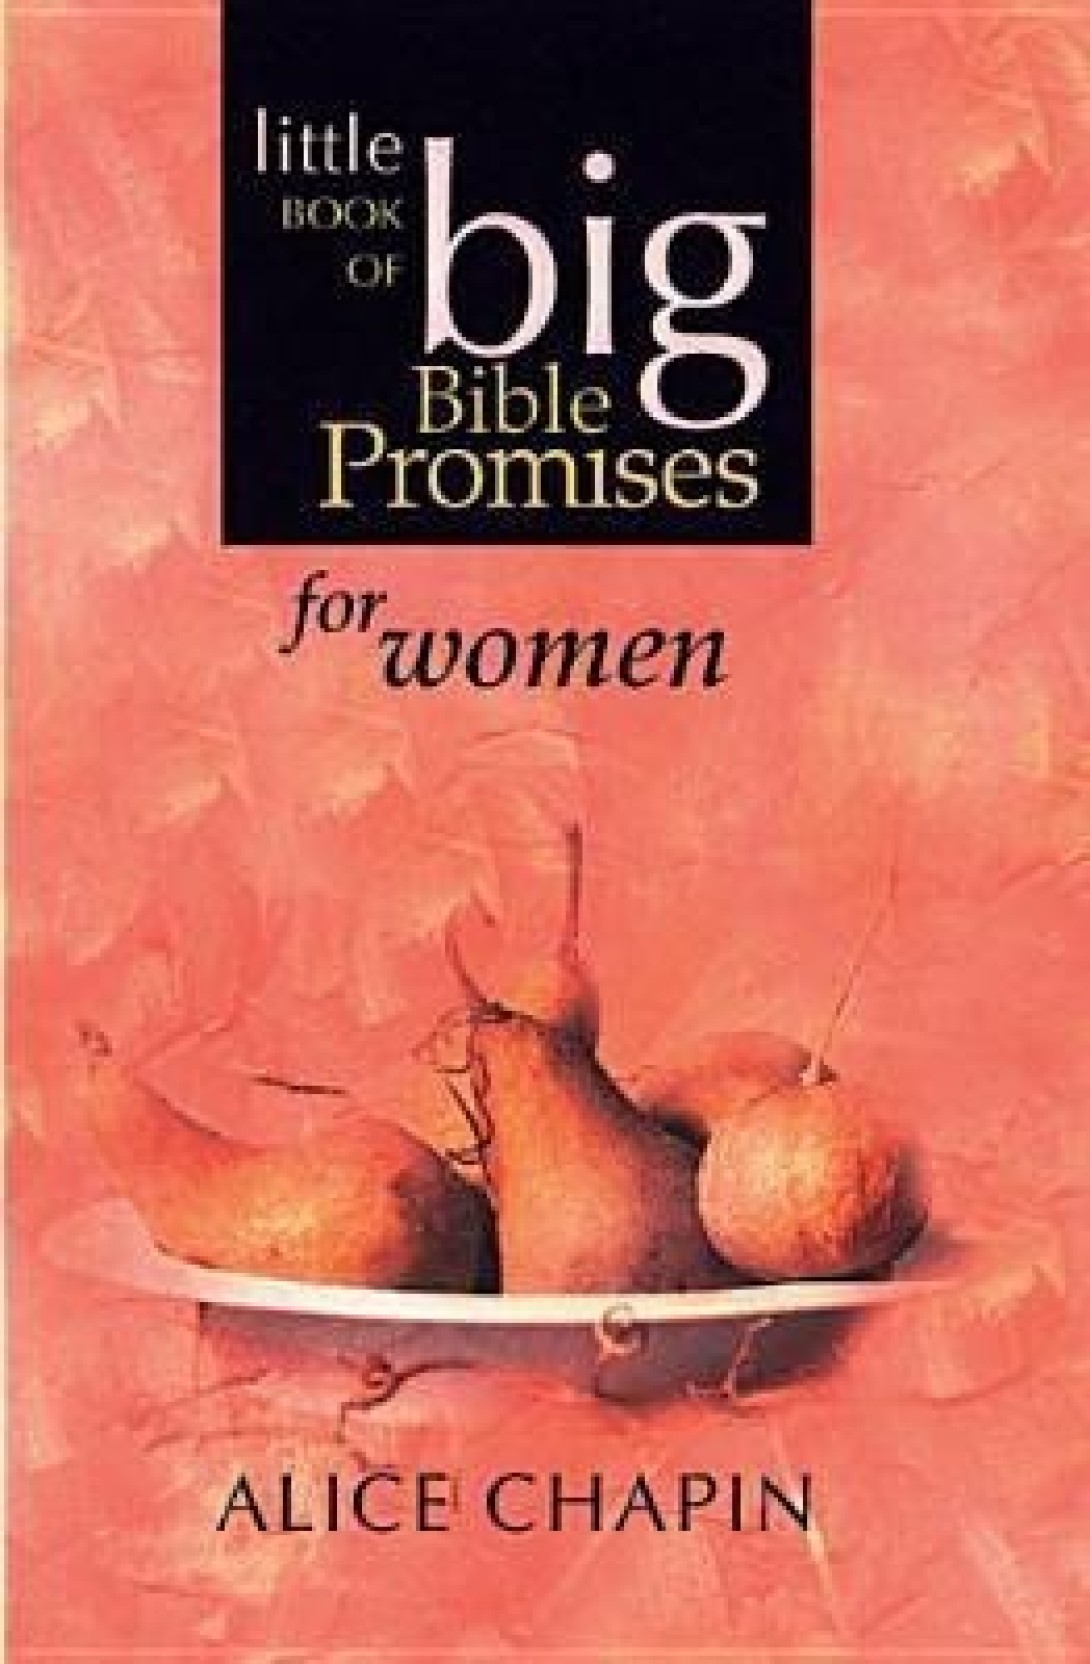 Little Book of Big Bible Promises for Women. Share